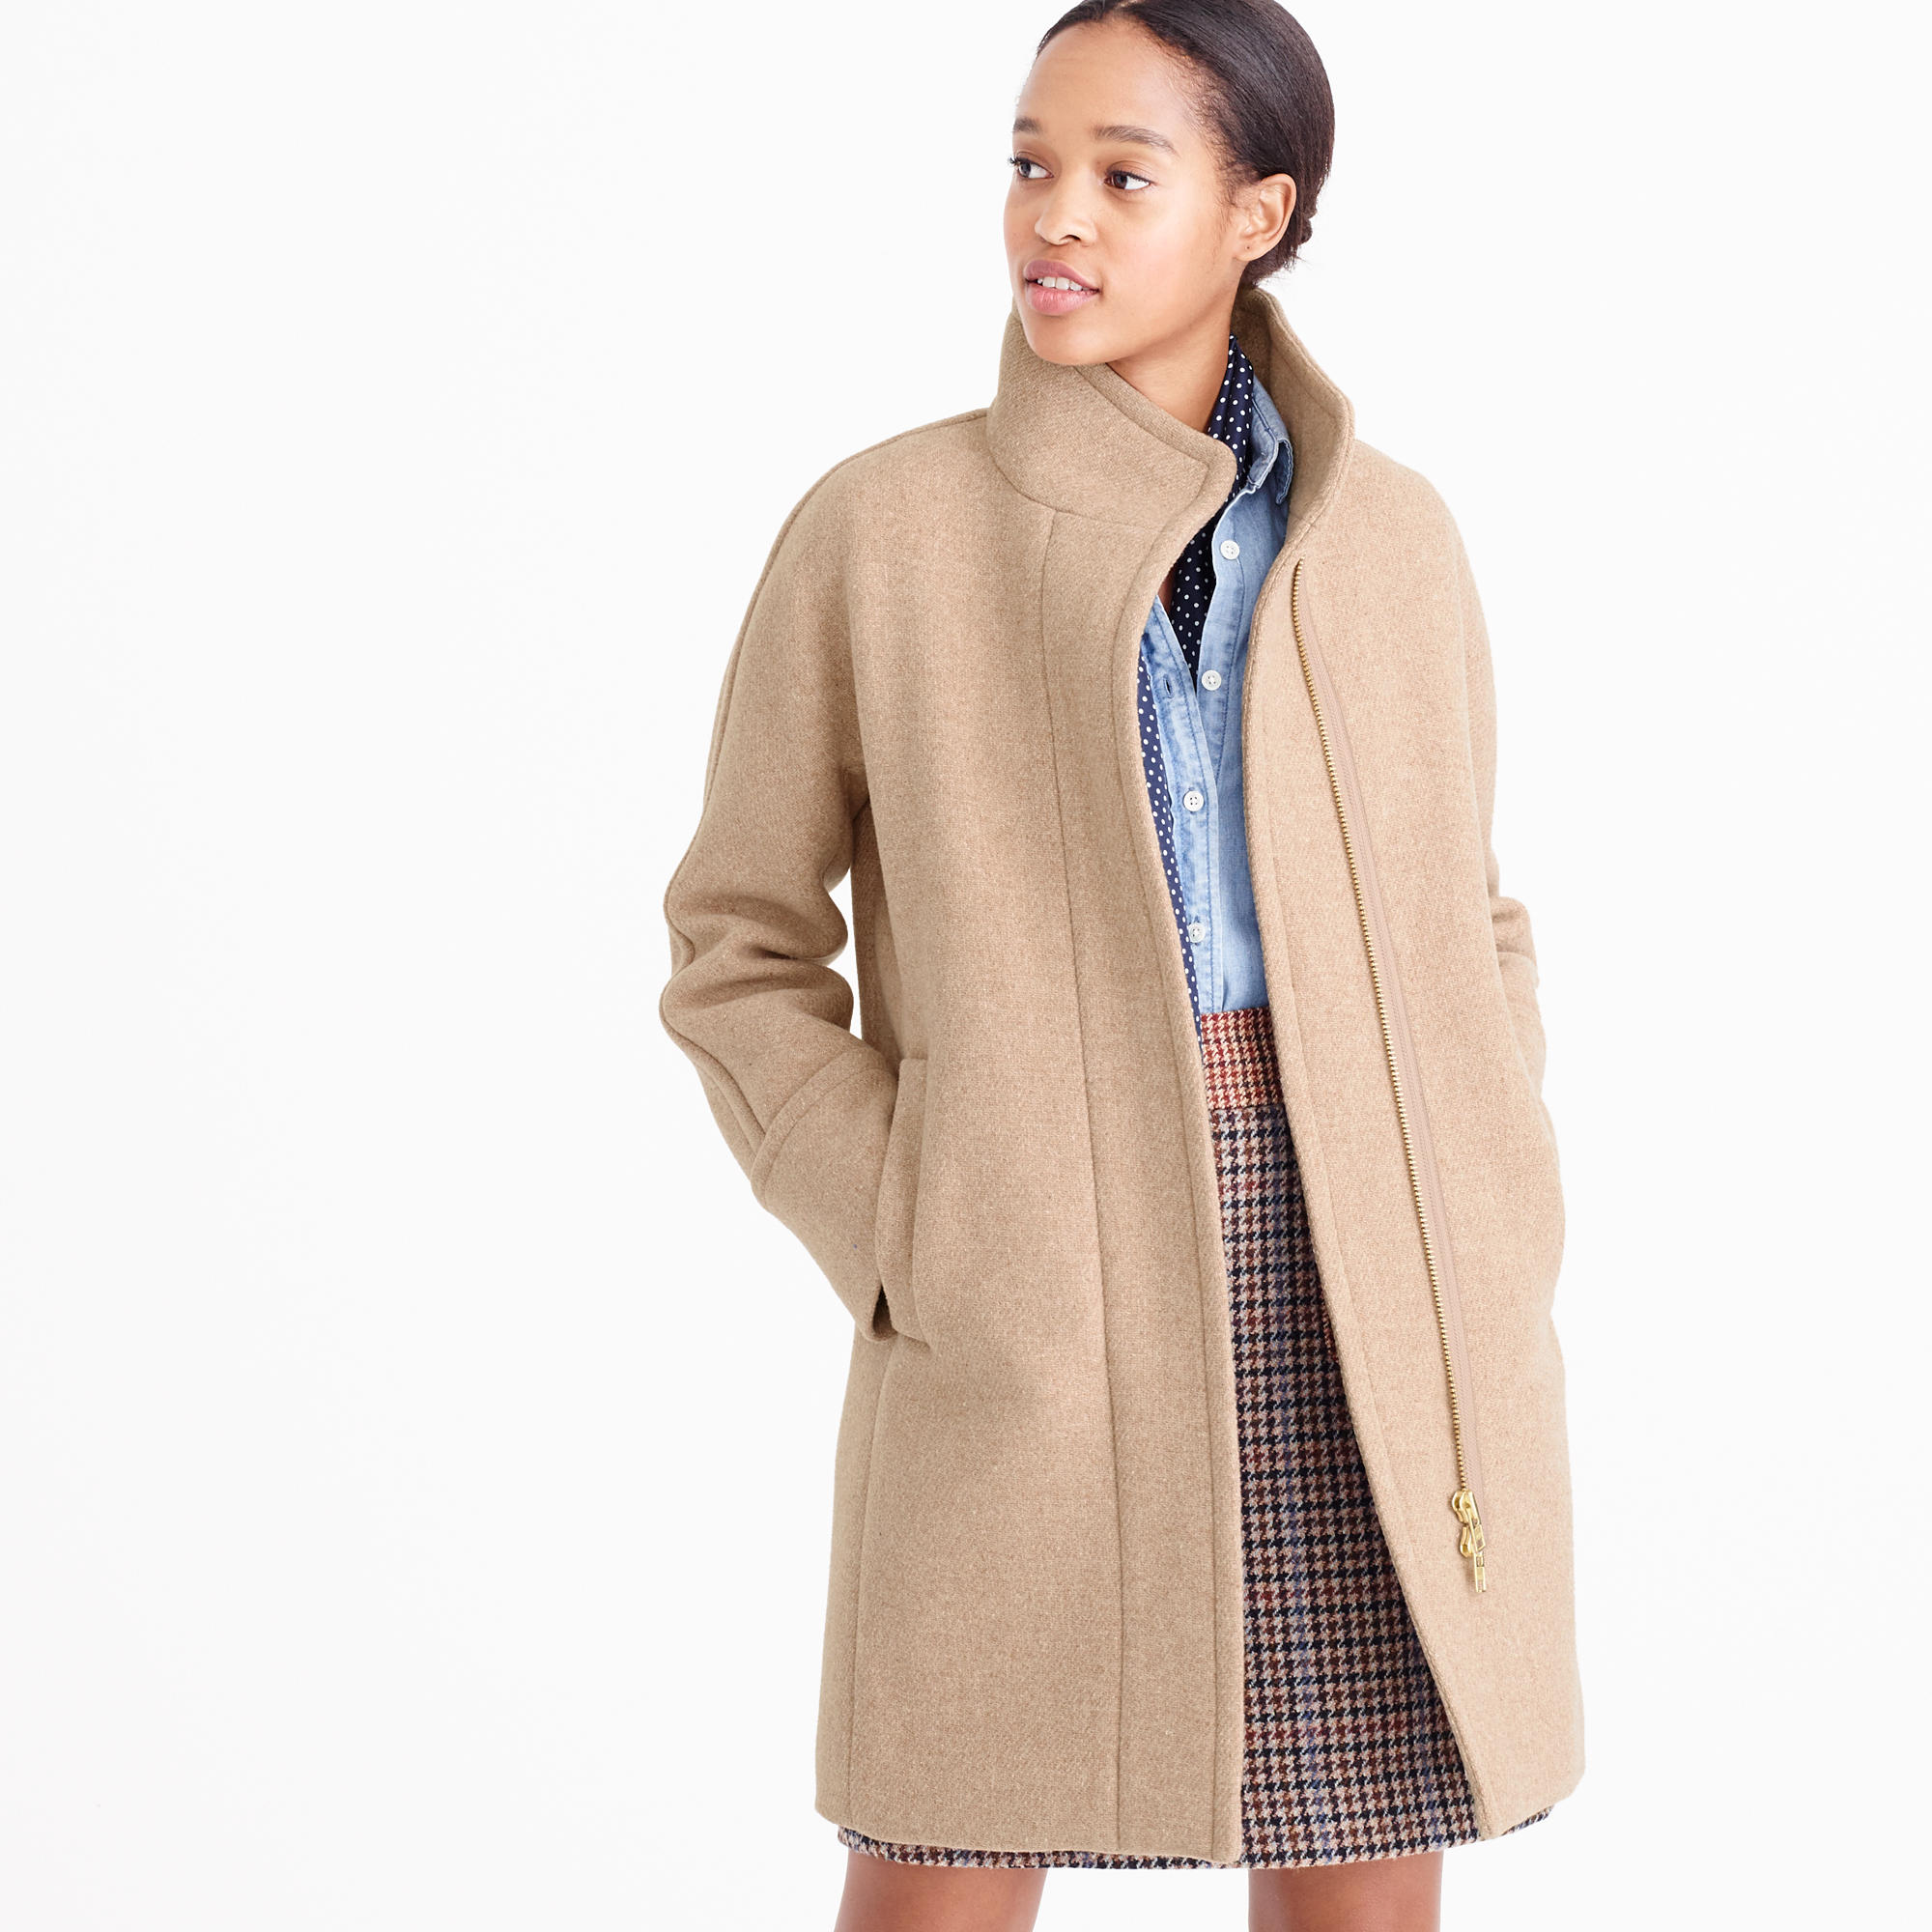 Tall Stadium-Cloth Cocoon Coat : Women's Coats & Jackets | J.Crew